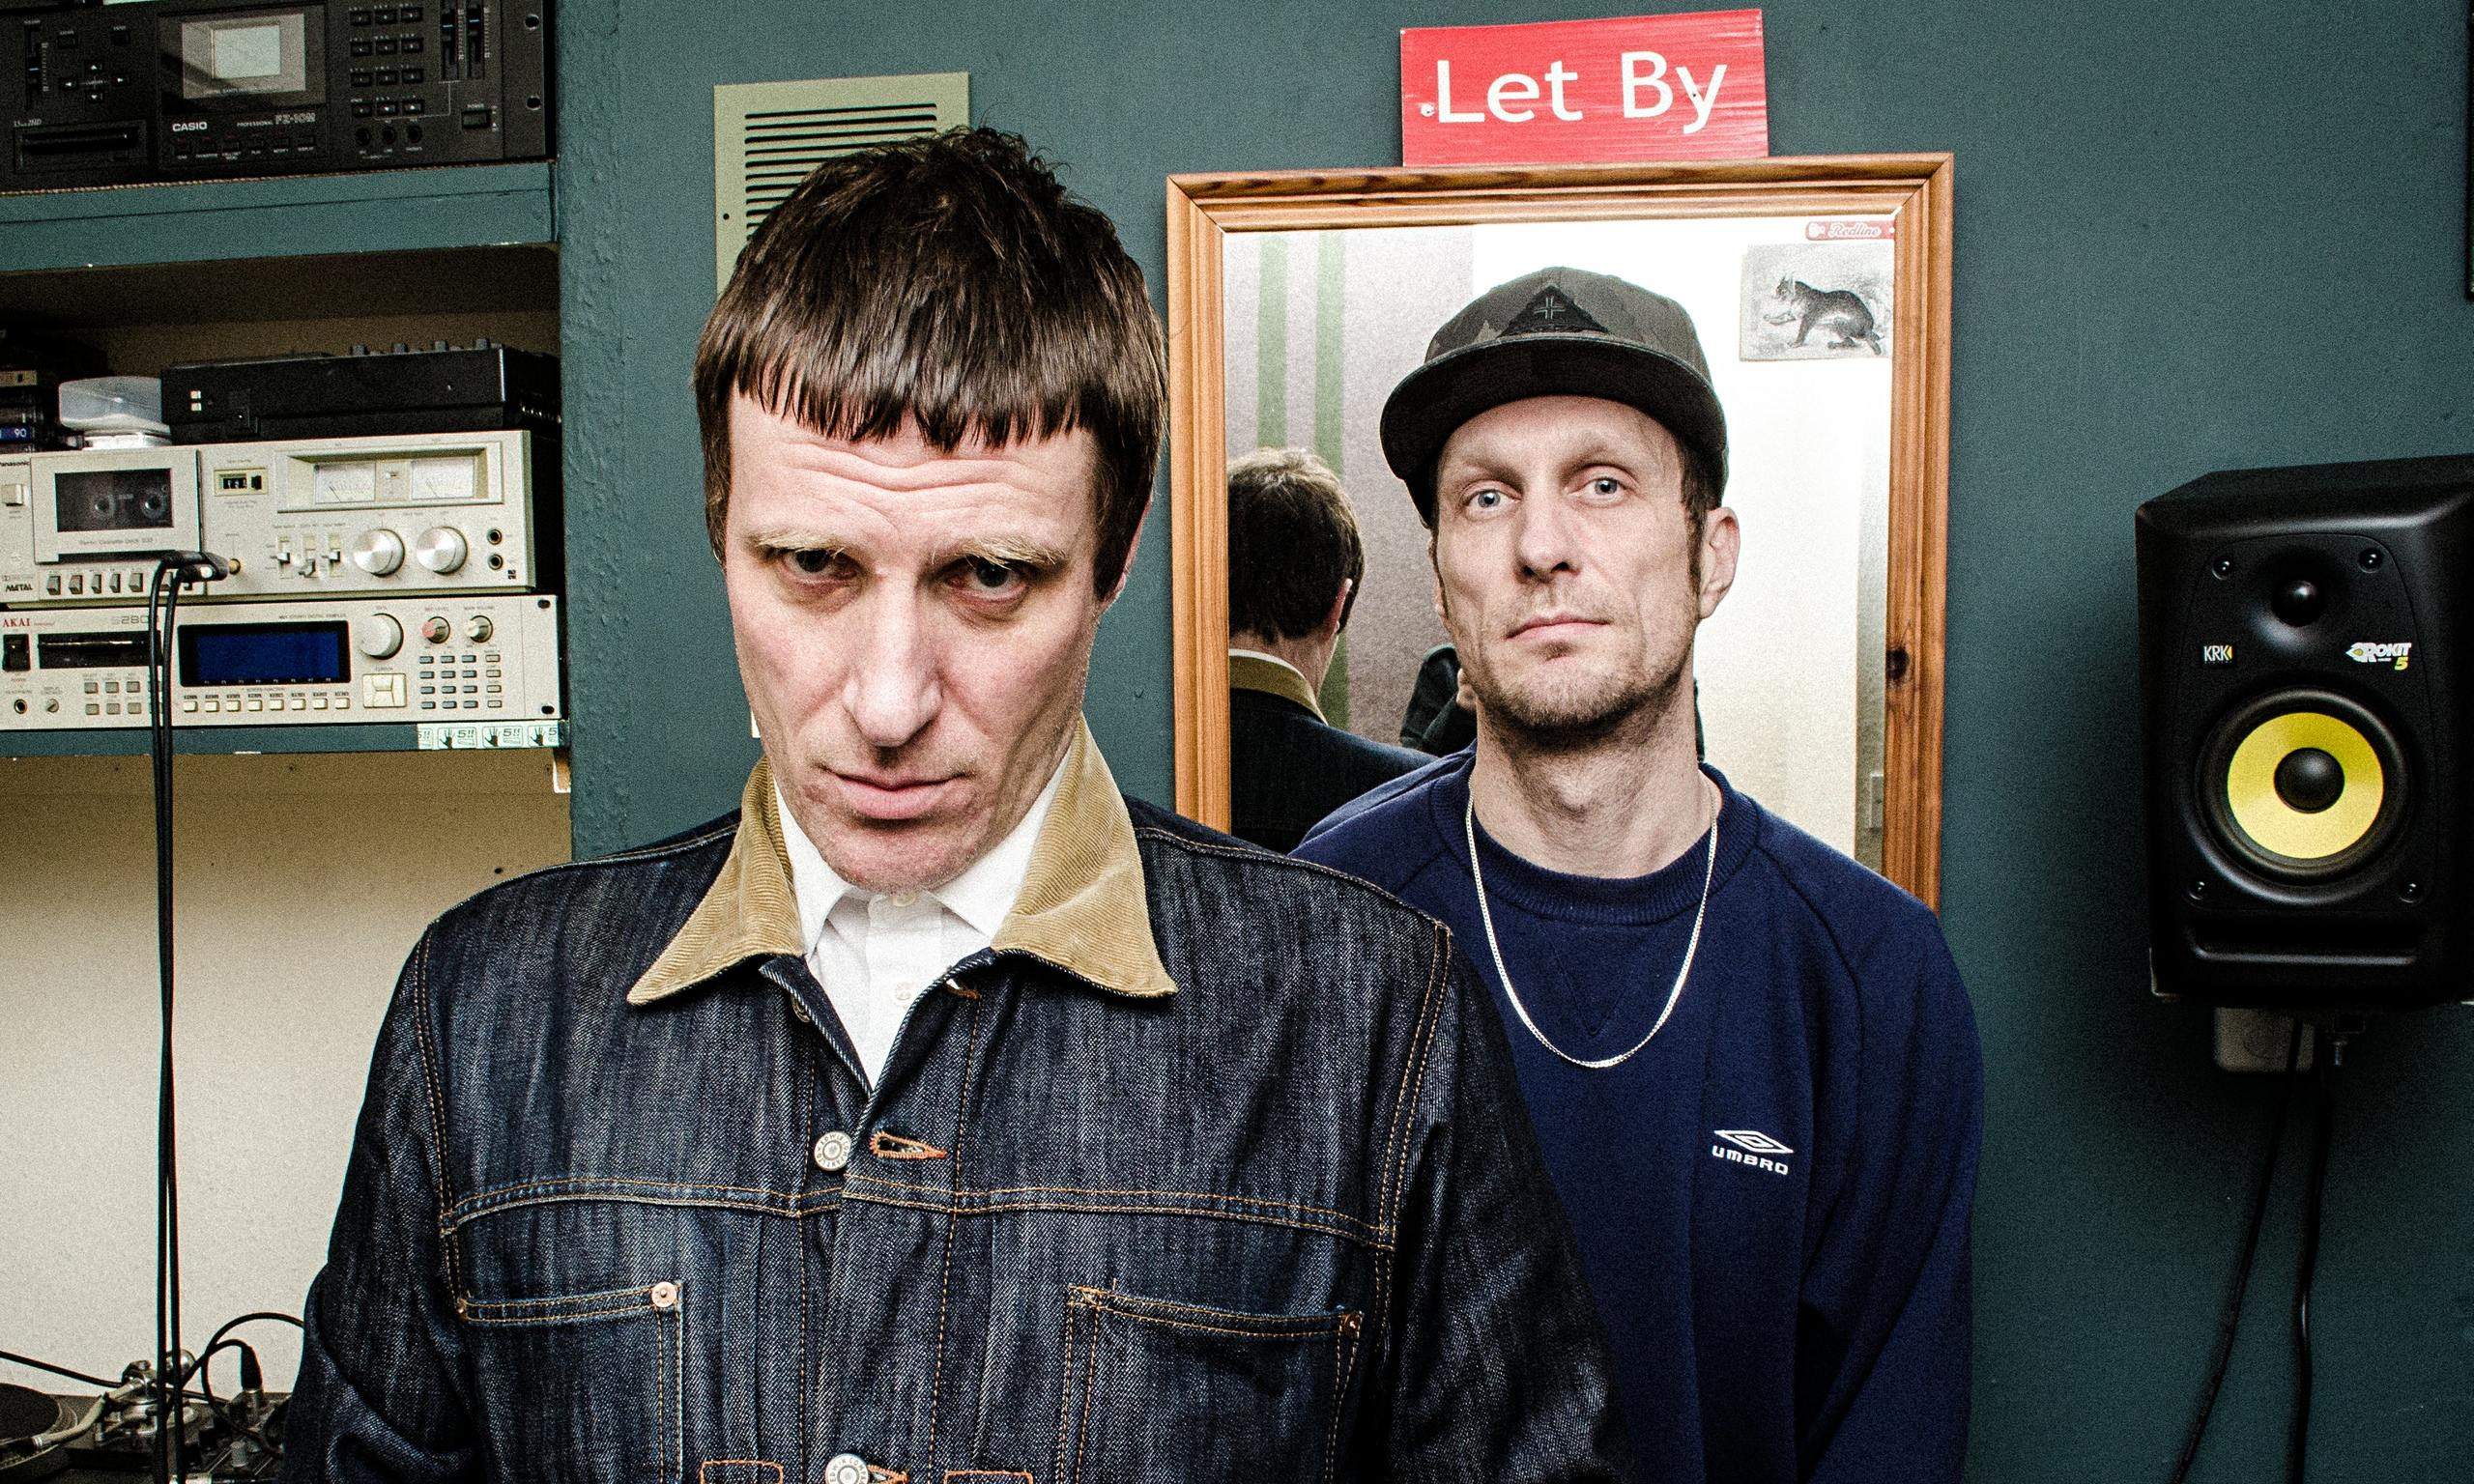 Sleaford Mods announce North American dates, starting, March 30th in Brooklyn,